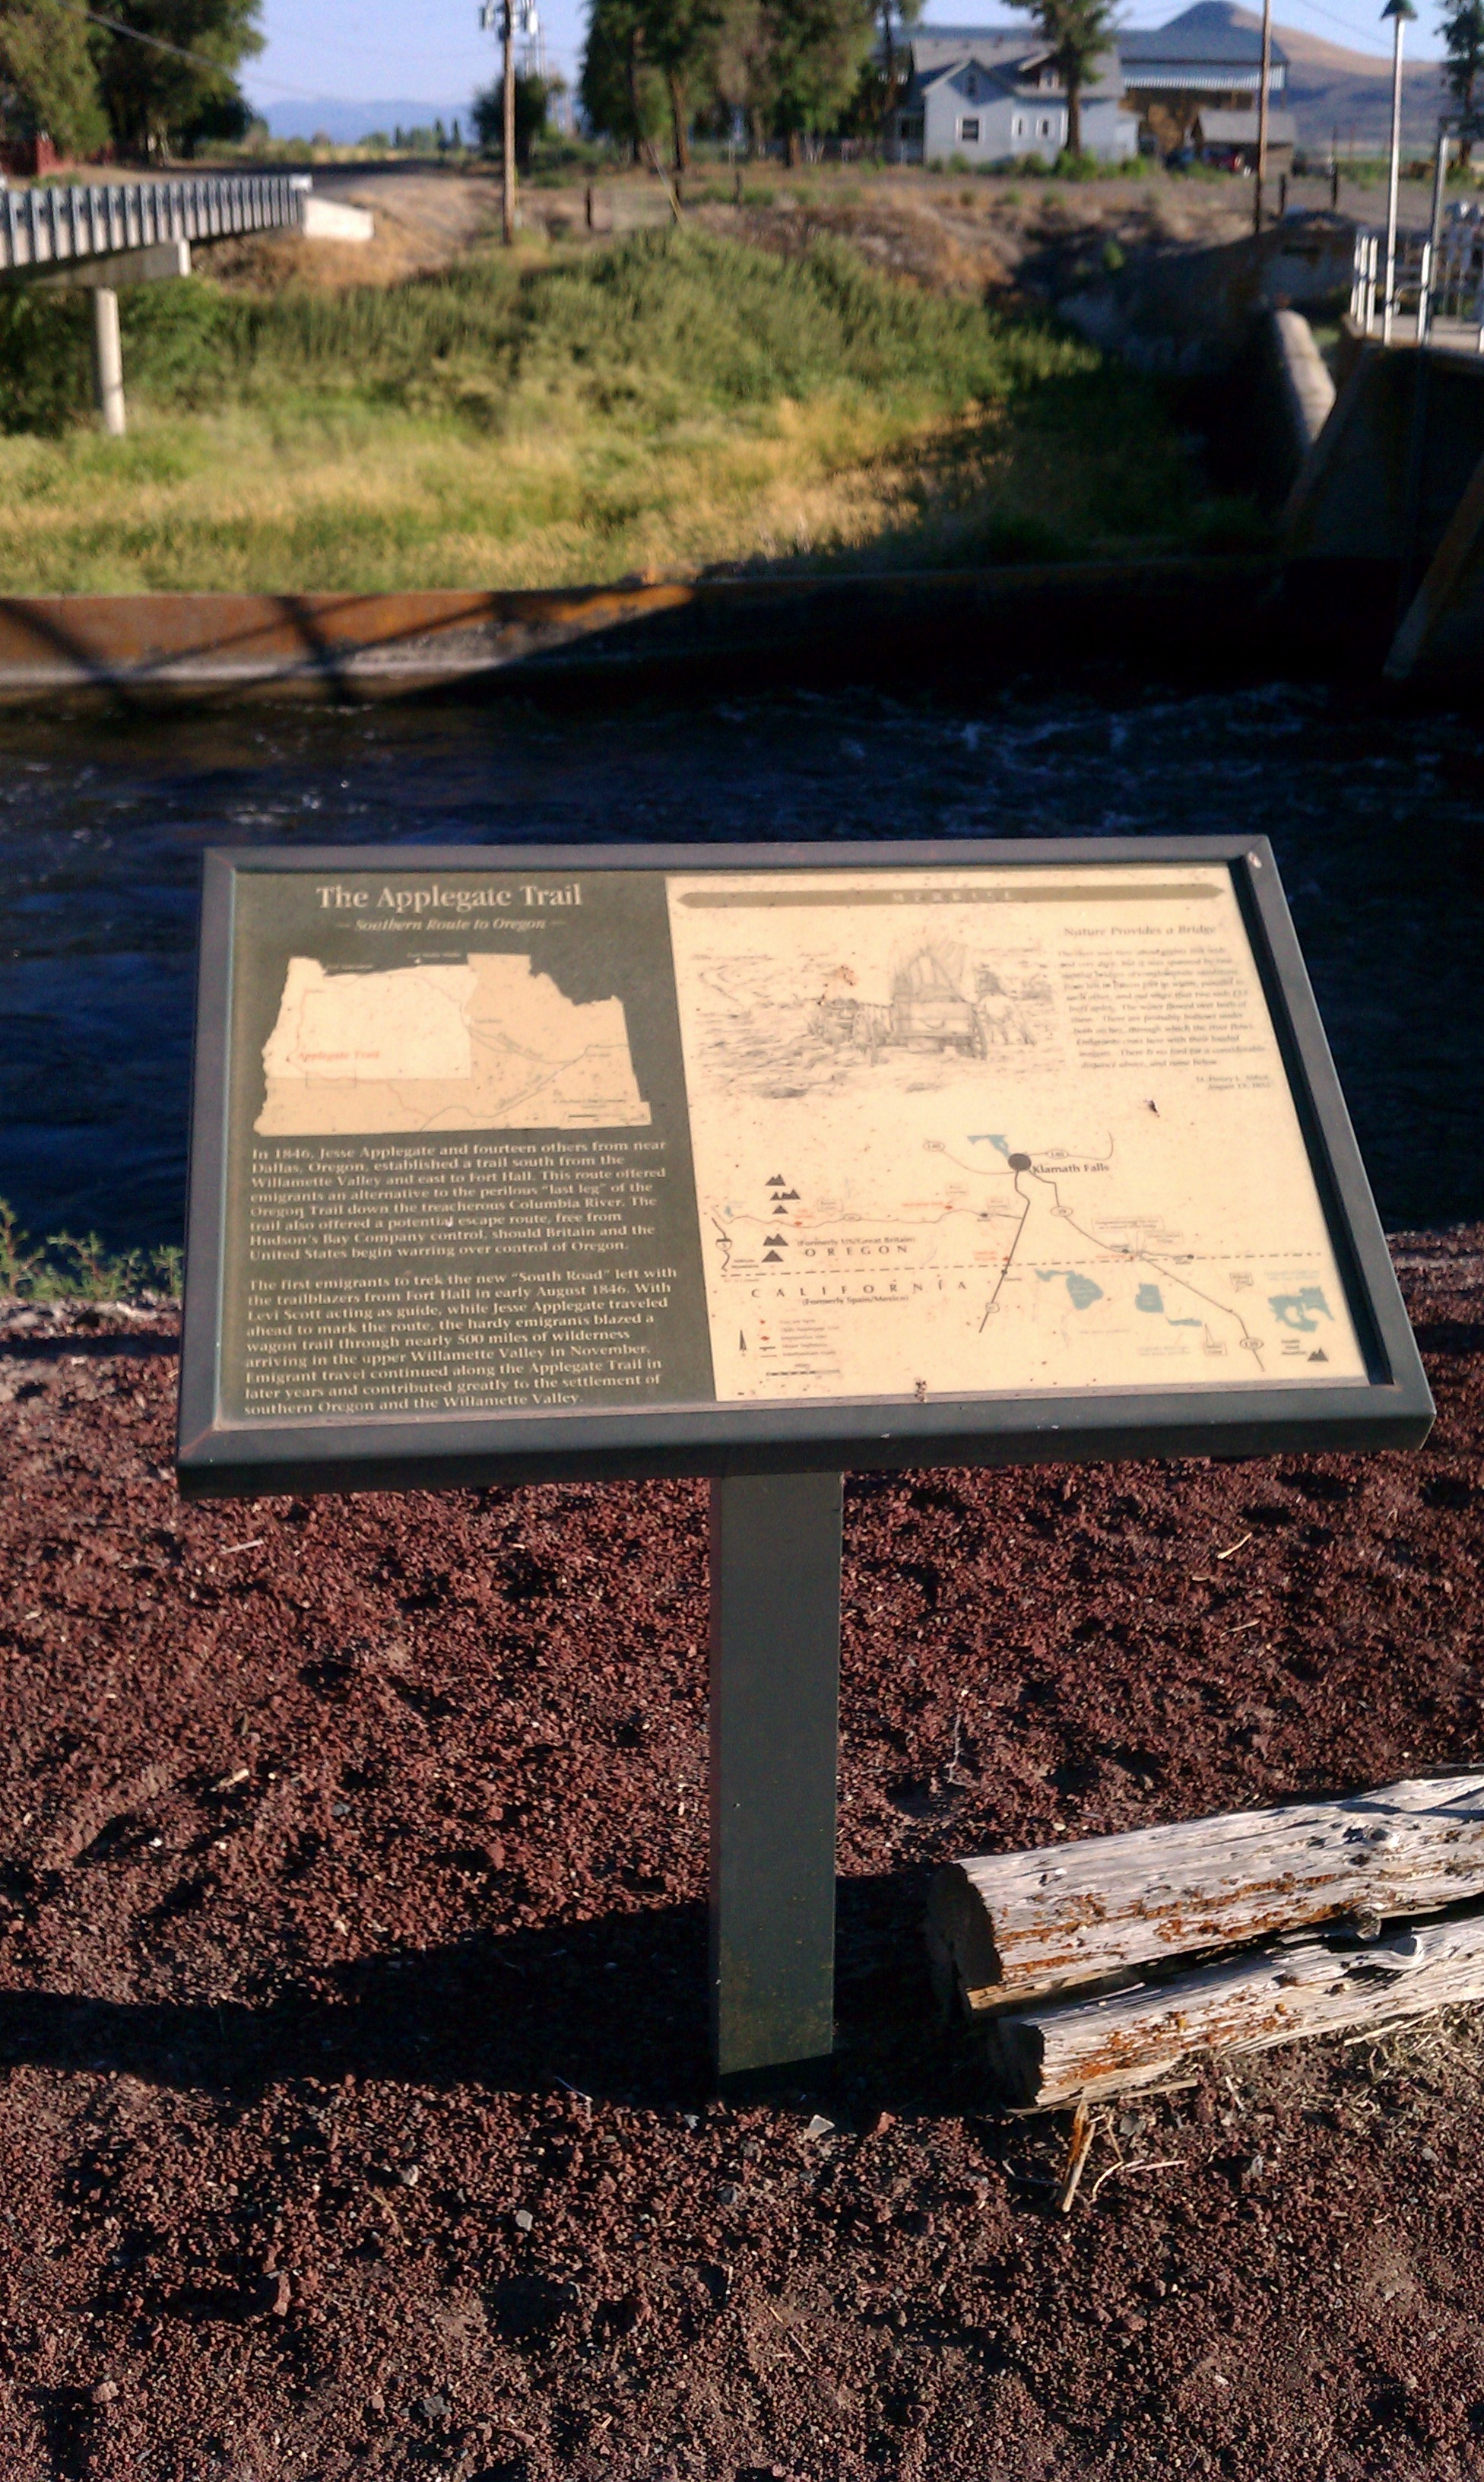 The Applegate Trail Marker